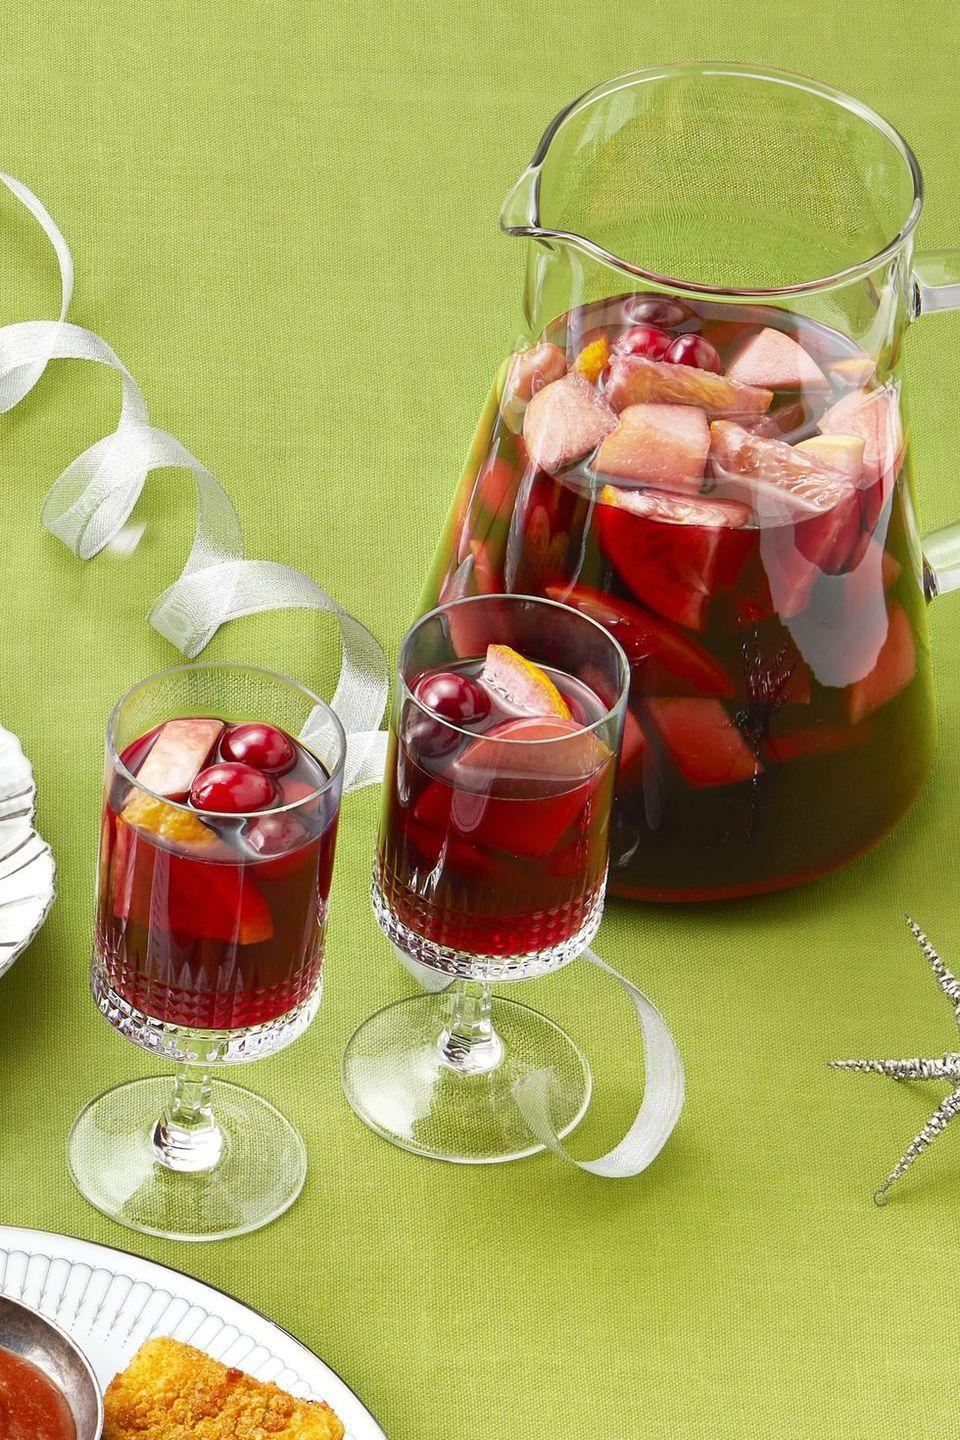 """<p>Combine fresh apples from the orchard with cranberries and oranges for an easy fall sangria.</p><p><a href=""""https://www.thepioneerwoman.com/food-cooking/recipes/a32303964/winter-sangria-recipe/"""" rel=""""nofollow noopener"""" target=""""_blank"""" data-ylk=""""slk:Get the recipe."""" class=""""link rapid-noclick-resp""""><strong>Get the recipe.</strong></a></p><p><a class=""""link rapid-noclick-resp"""" href=""""https://go.redirectingat.com?id=74968X1596630&url=https%3A%2F%2Fwww.walmart.com%2Fsearch%2F%3Fquery%3Dpitchers&sref=https%3A%2F%2Fwww.thepioneerwoman.com%2Ffood-cooking%2Fmeals-menus%2Fg33510531%2Ffall-cocktail-recipes%2F"""" rel=""""nofollow noopener"""" target=""""_blank"""" data-ylk=""""slk:SHOP PITCHERS"""">SHOP PITCHERS</a></p>"""